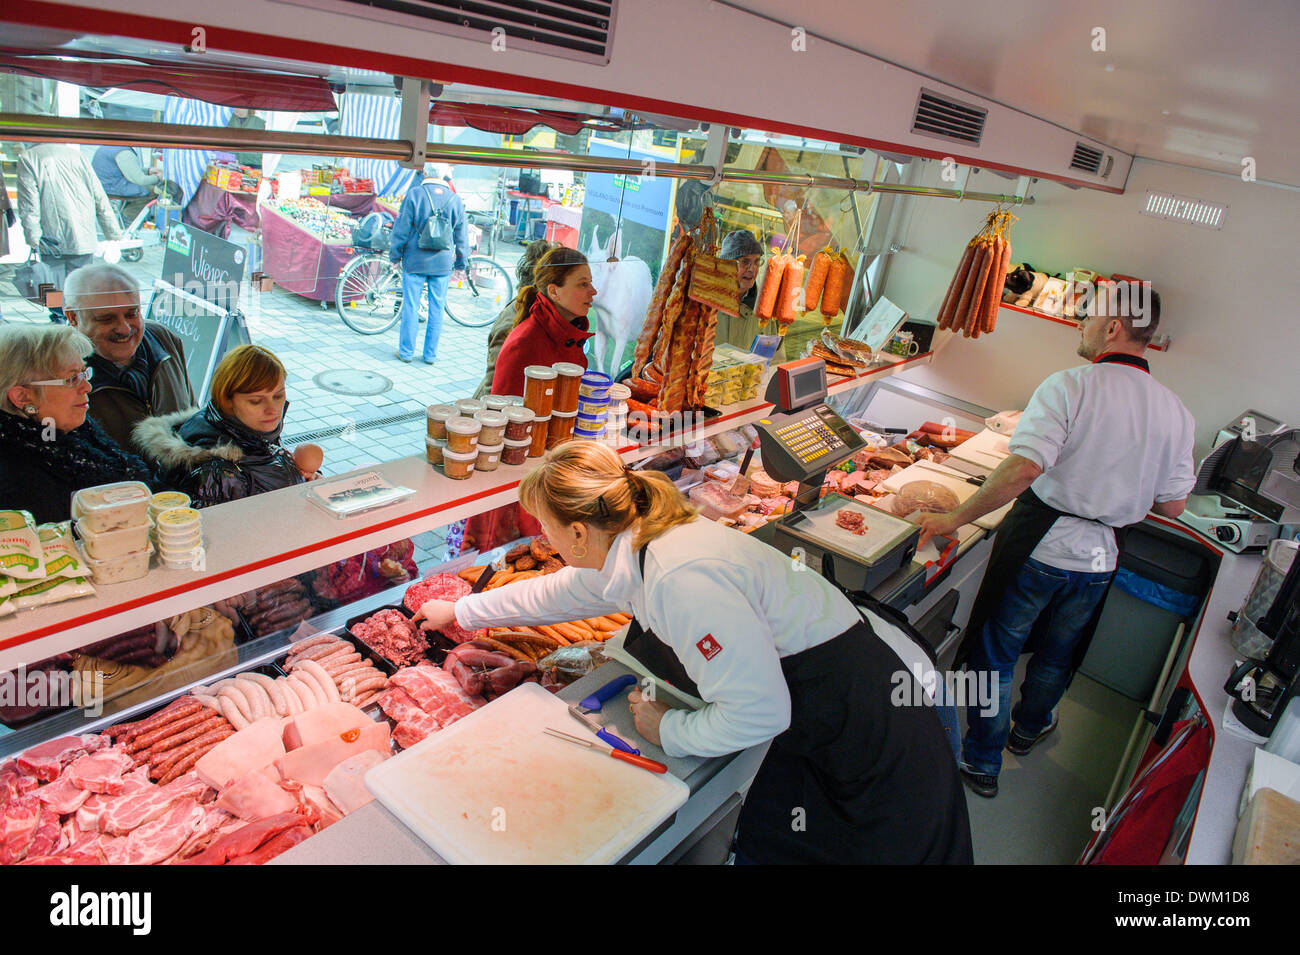 berlin germany 28th feb 2014 the mobile butcher shop of butcher stock photo 67437700 alamy. Black Bedroom Furniture Sets. Home Design Ideas